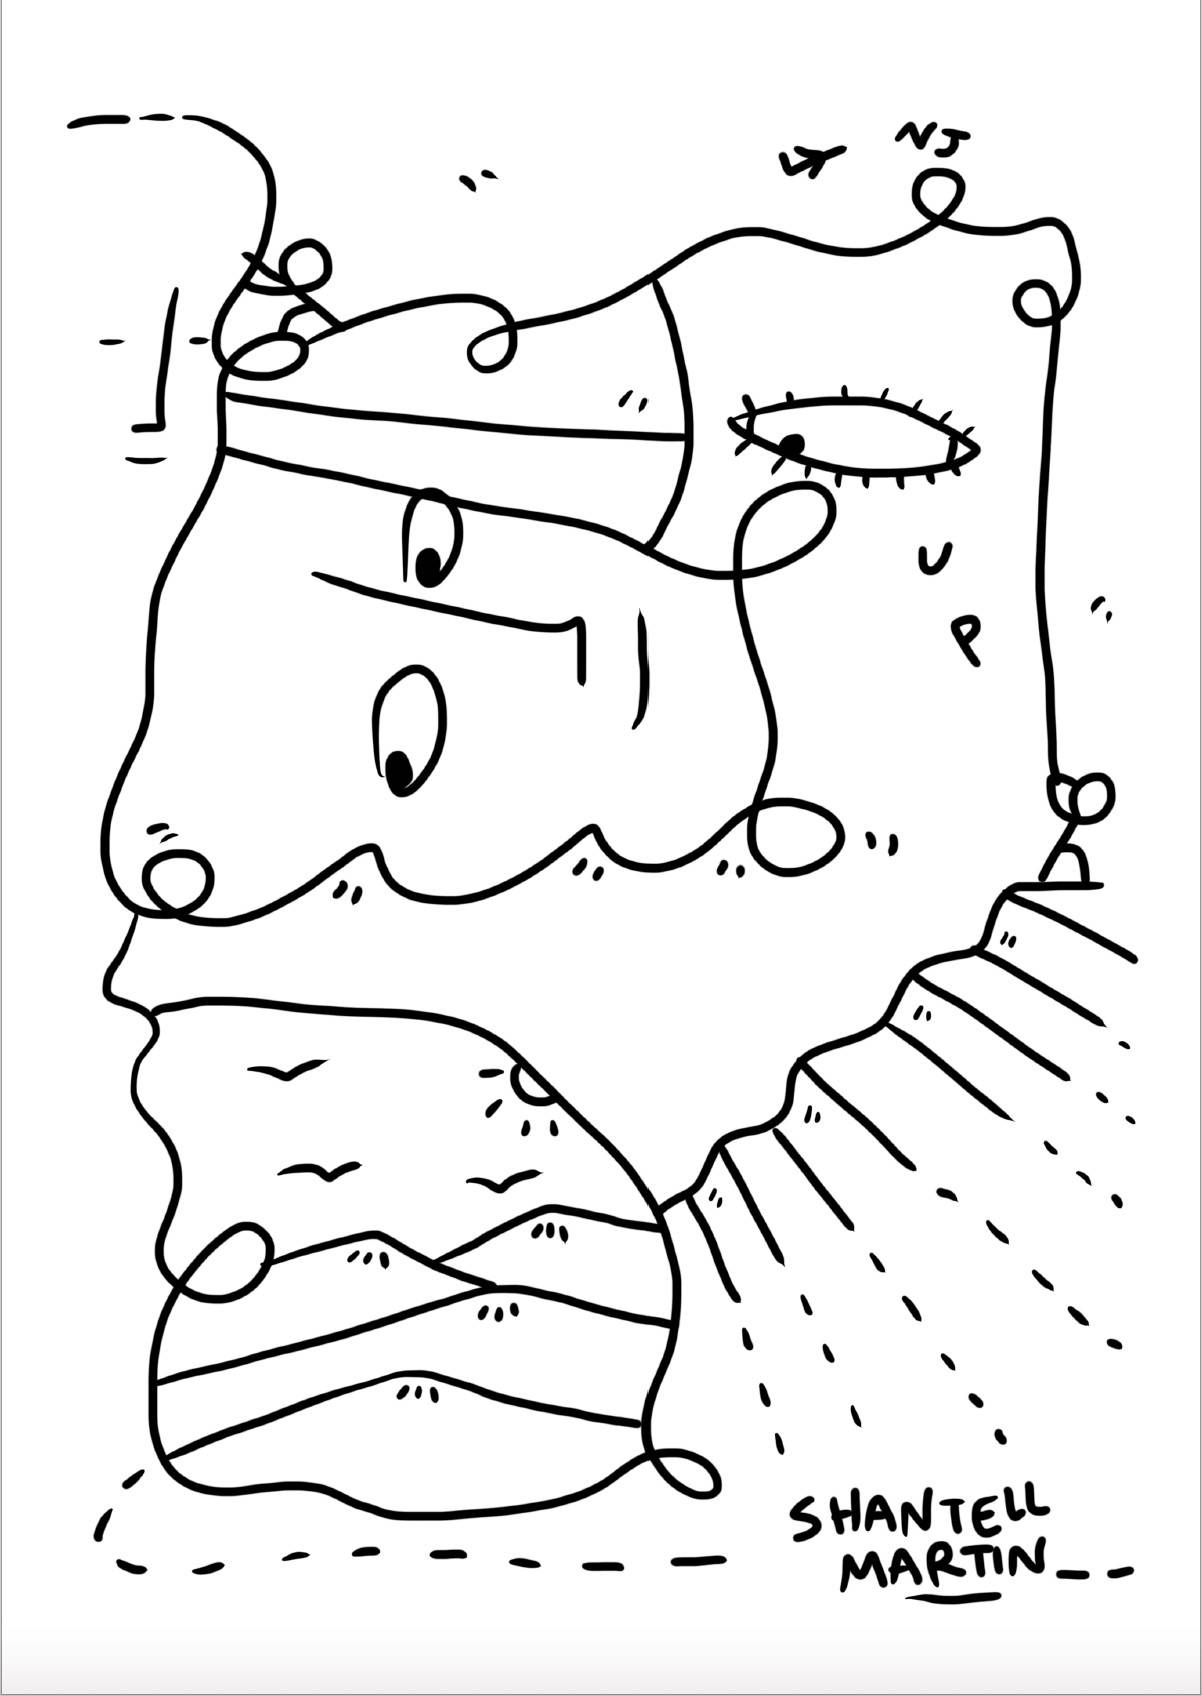 Smith_Restaurant_Group_Coloring_Book_Shantell_Martin.jpg